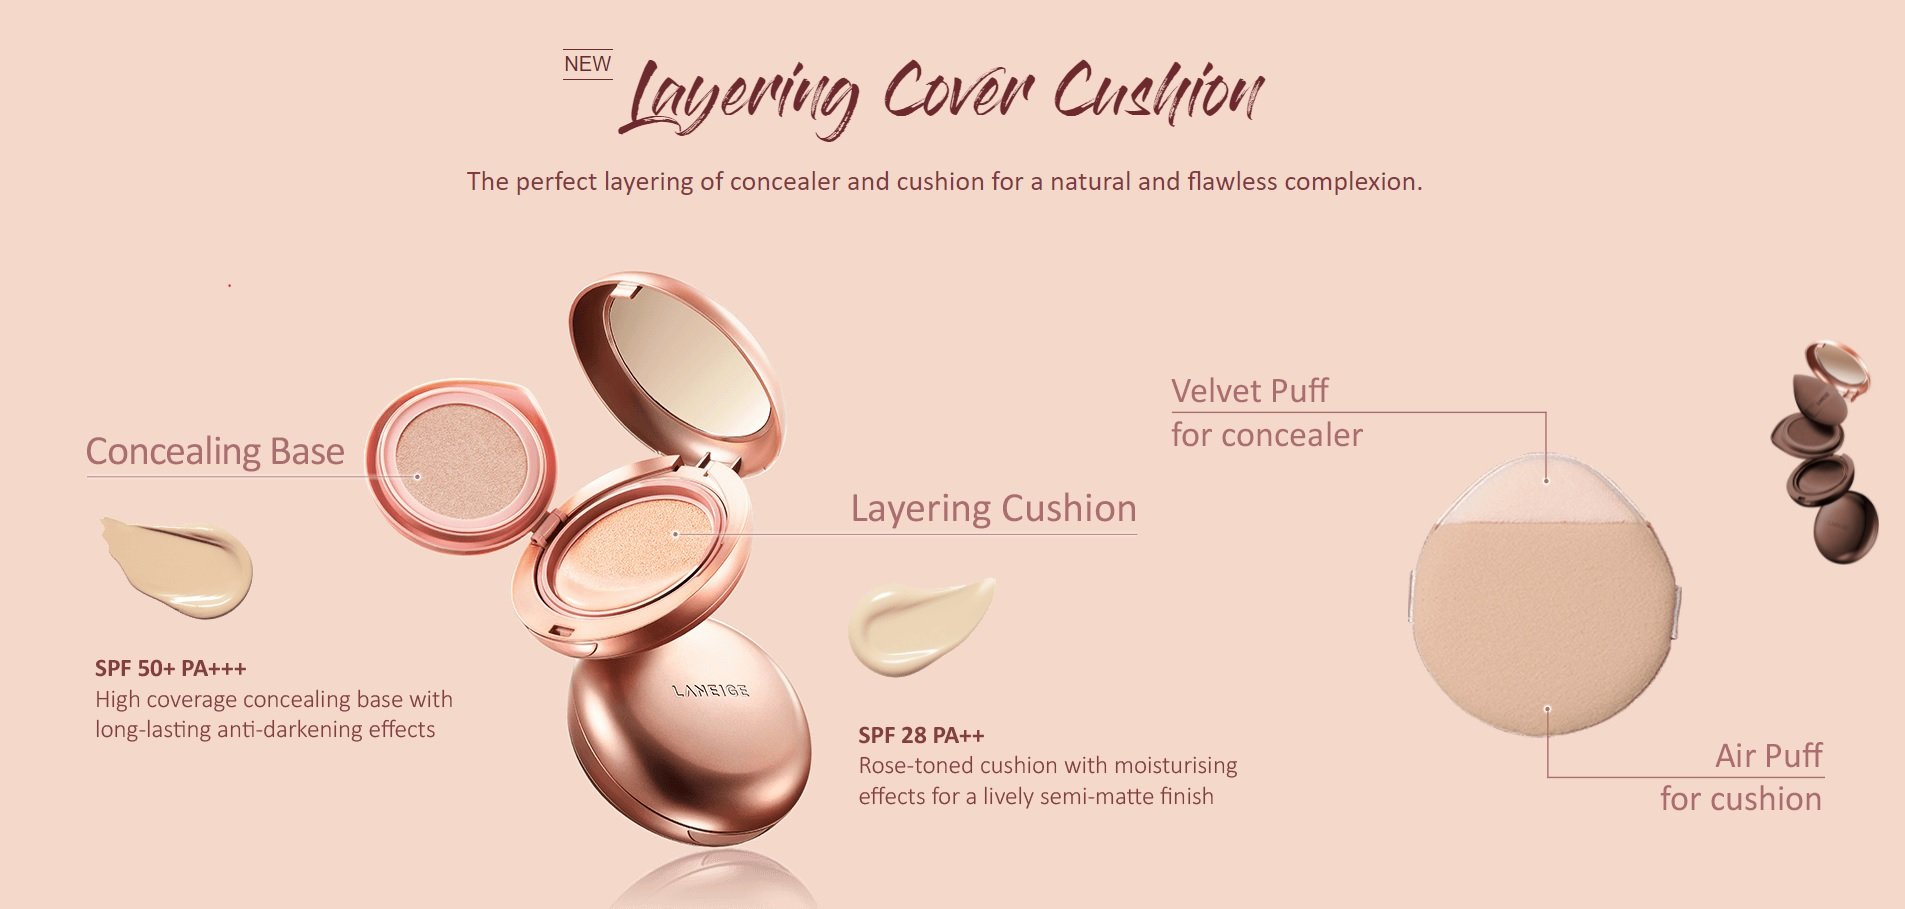 Laneige-Layering-Cover-Cushion_6.jpg